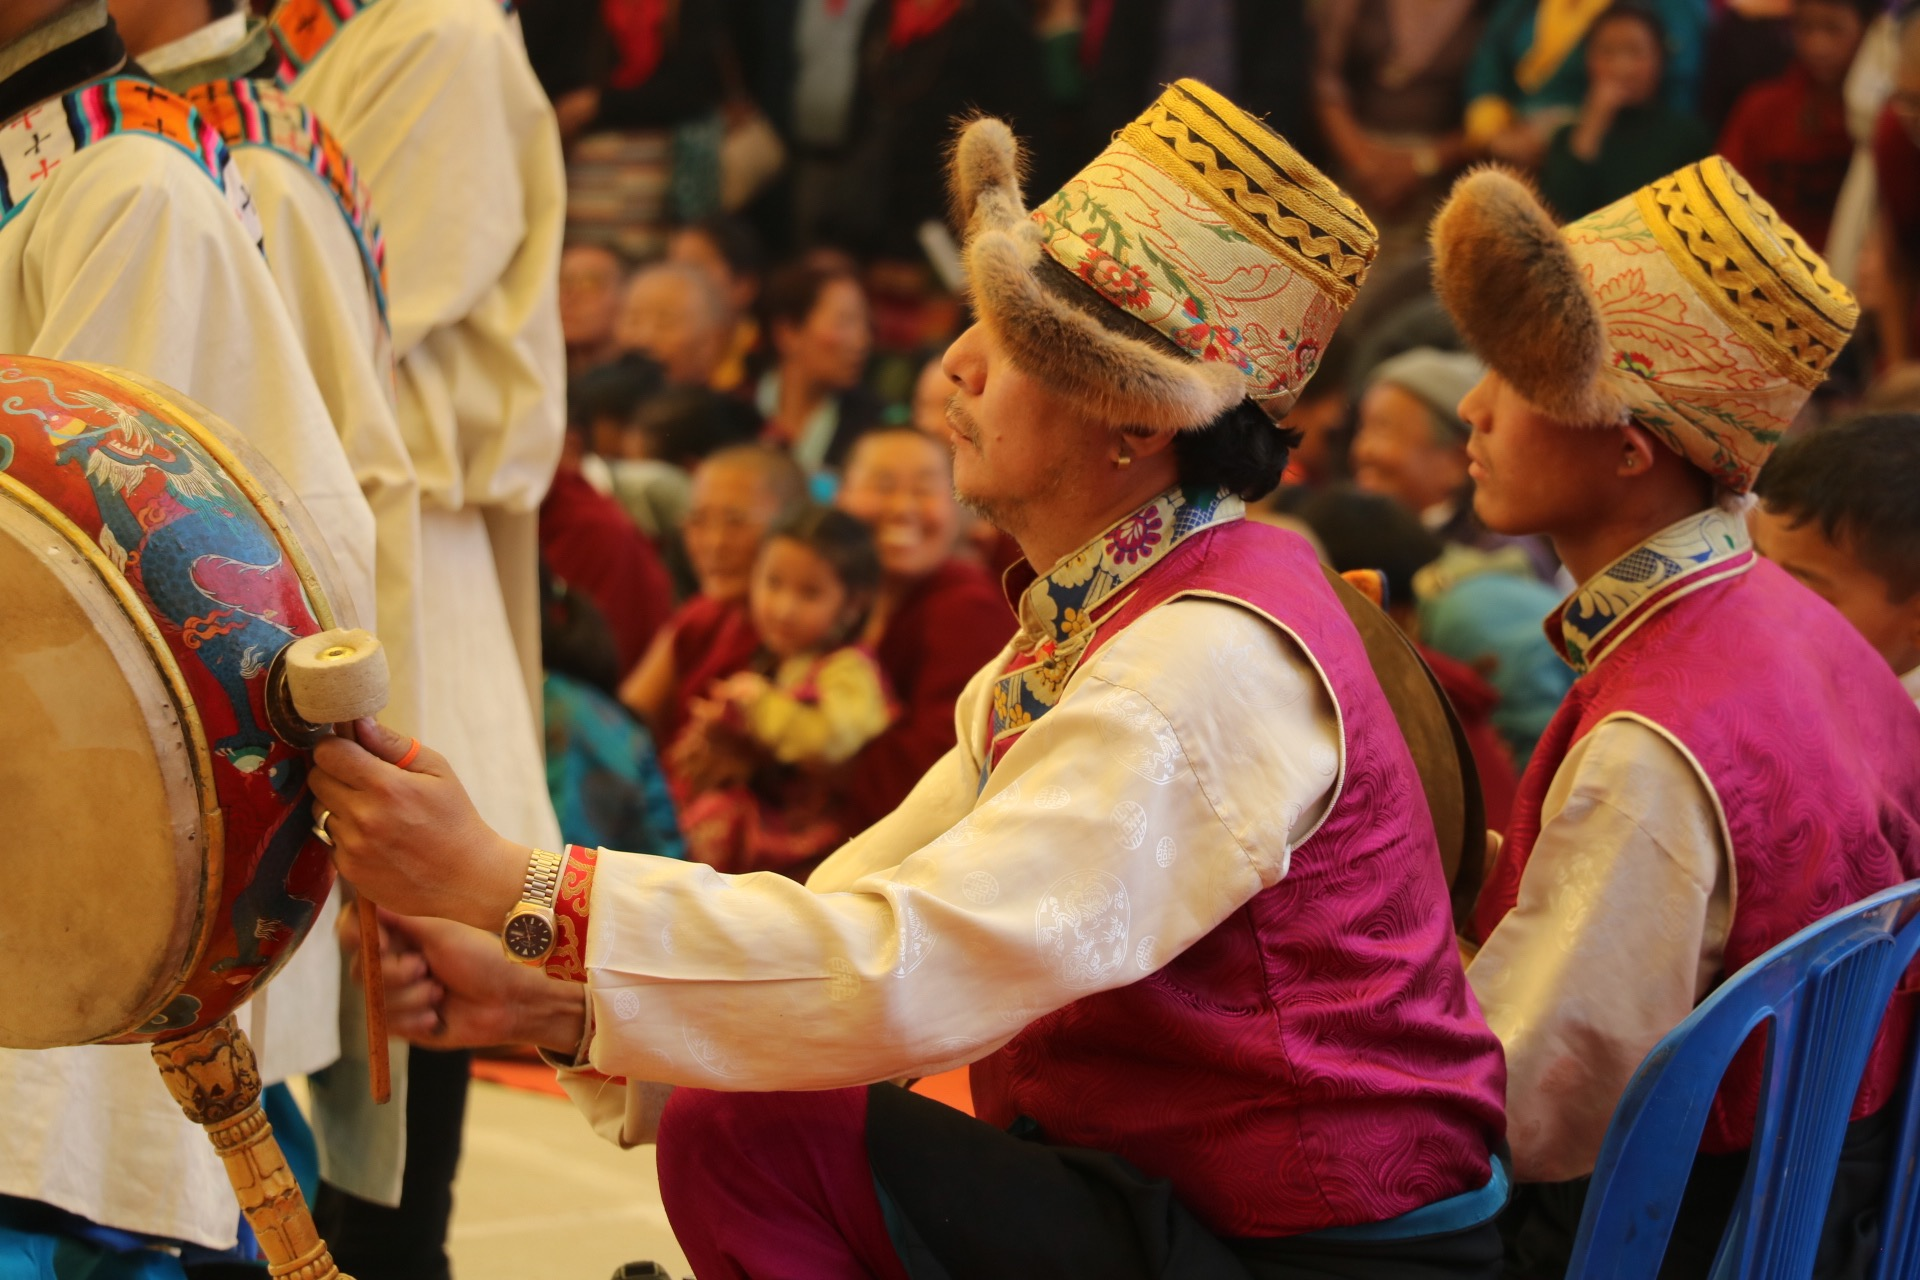 Immersed in Lhasa's Summer Shoton Festival